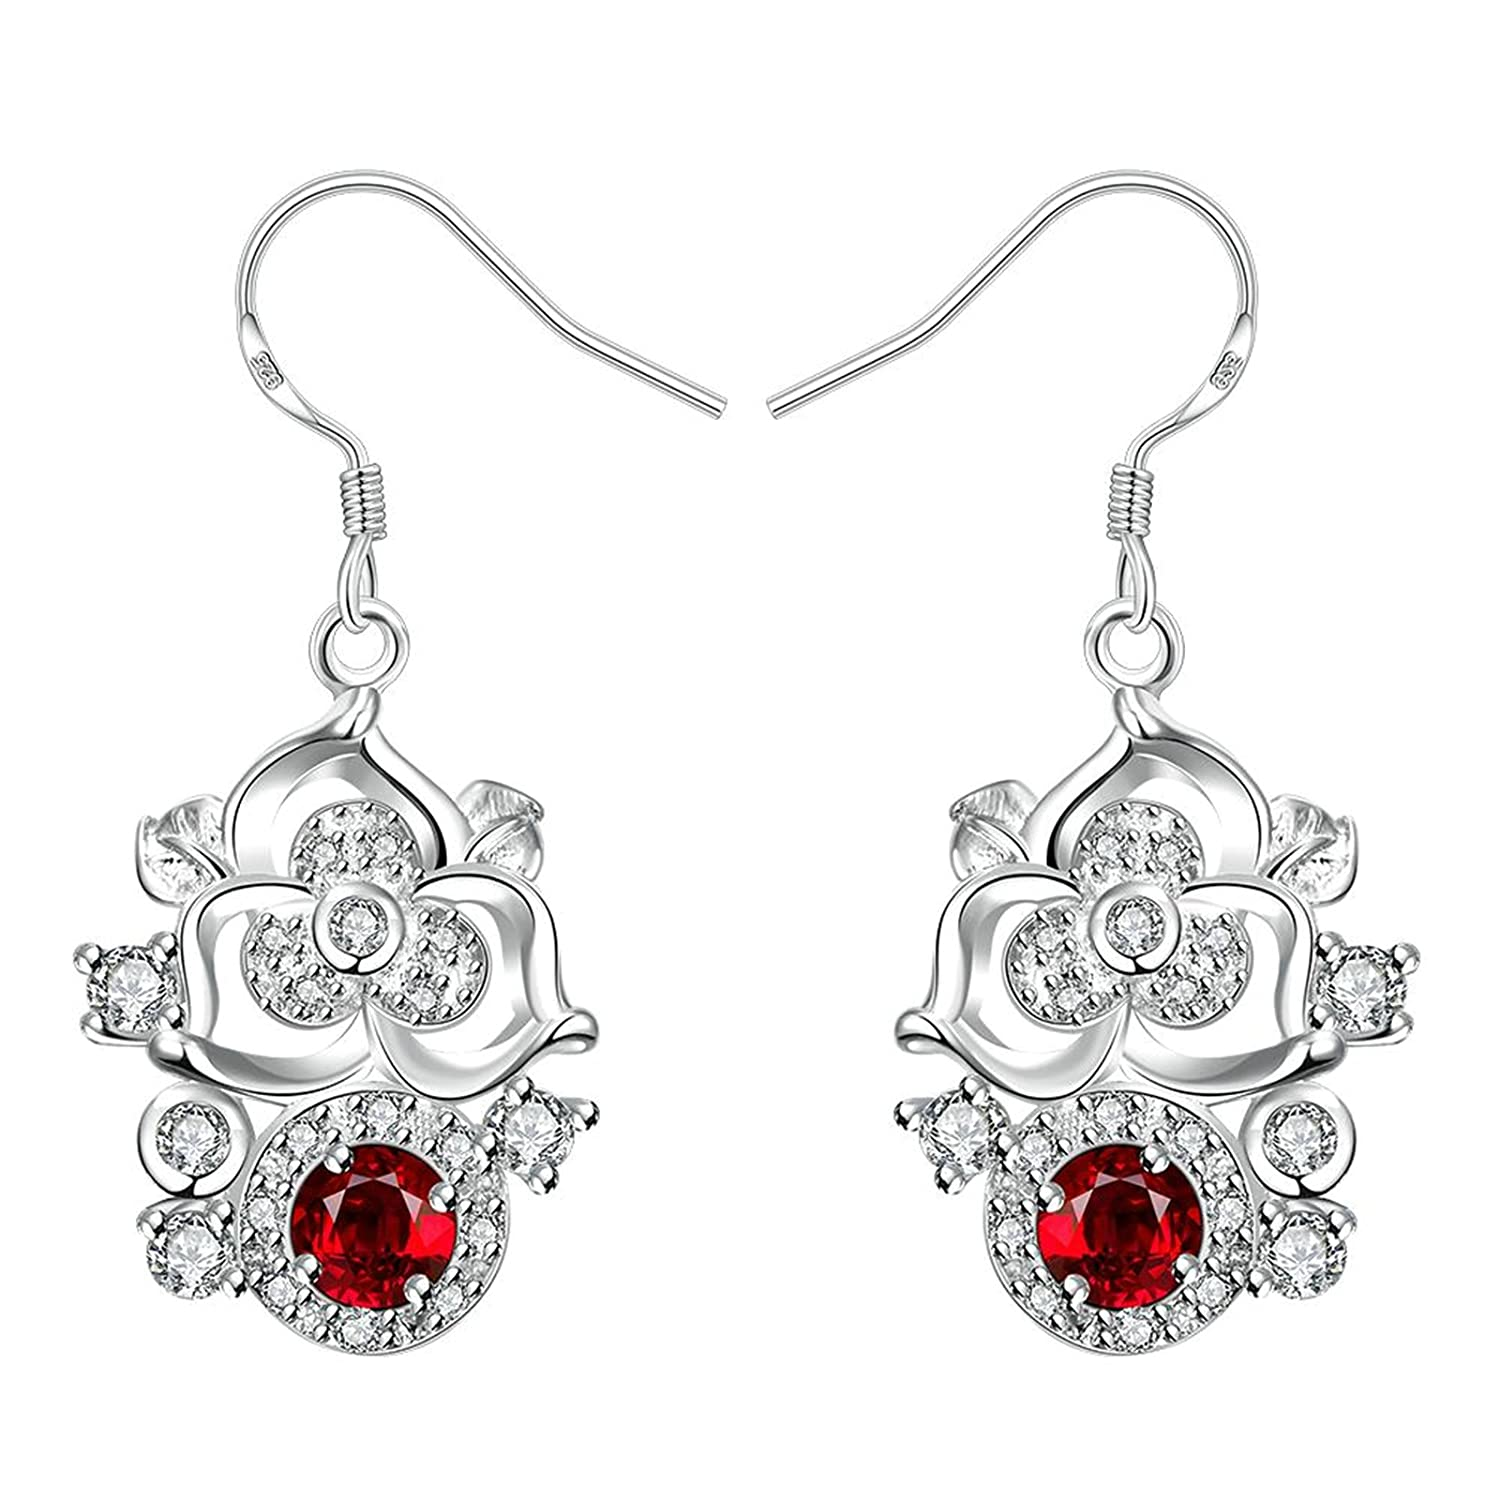 Gnzoe Fashion Jewelry 18K Silver Plated Drop Earrings Fishhook Flower Round Red Crystal Eco Friendly